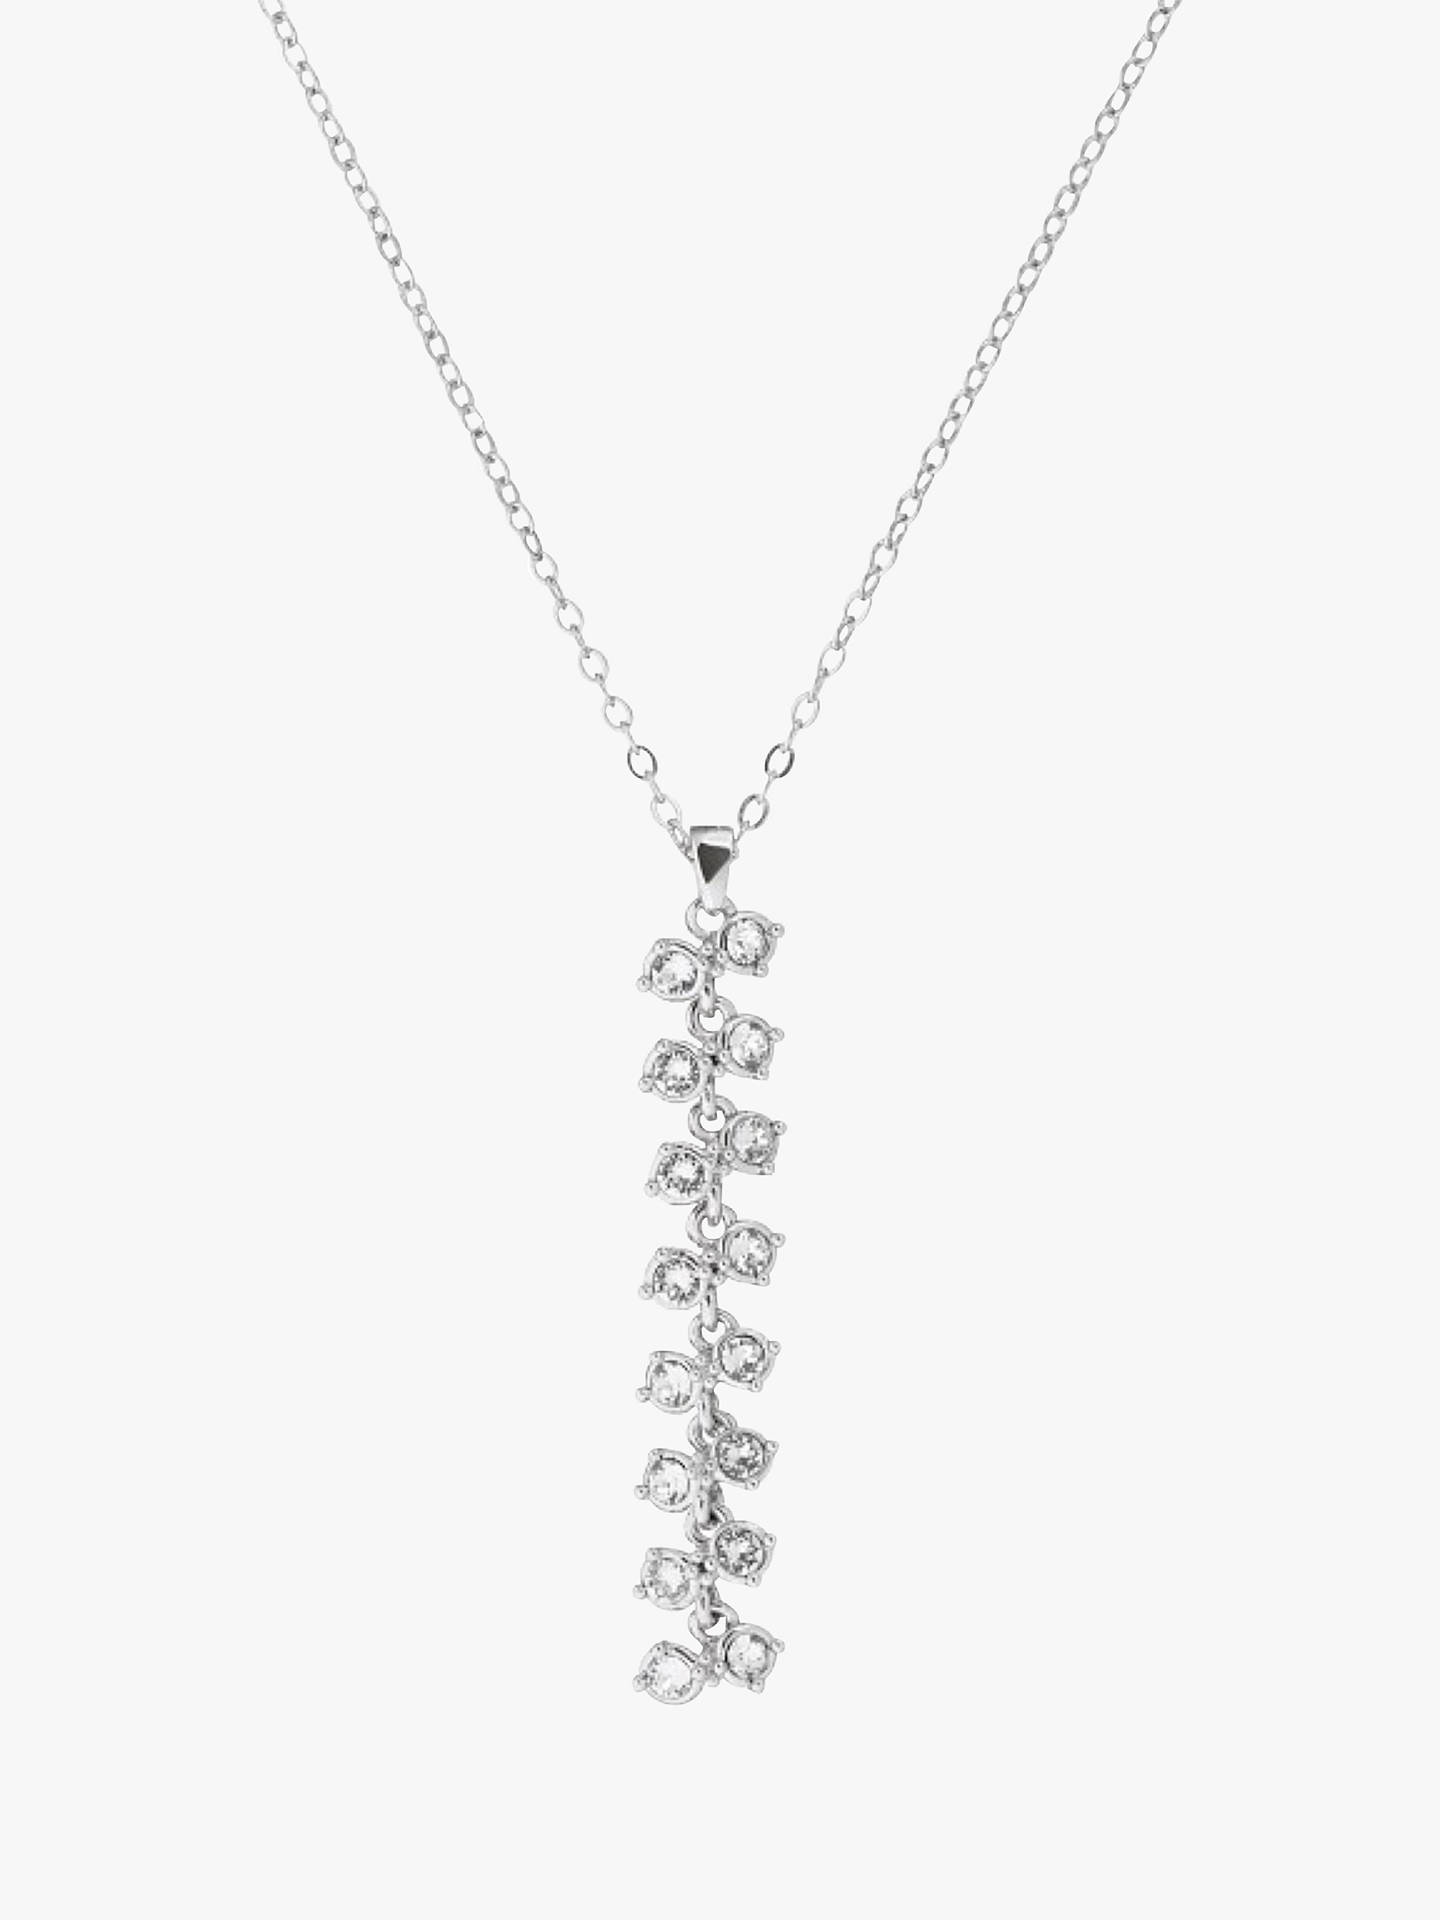 BuyTed Baker Eirra Princess Sparkle Pendant Necklace, Silver Online at johnlewis.com